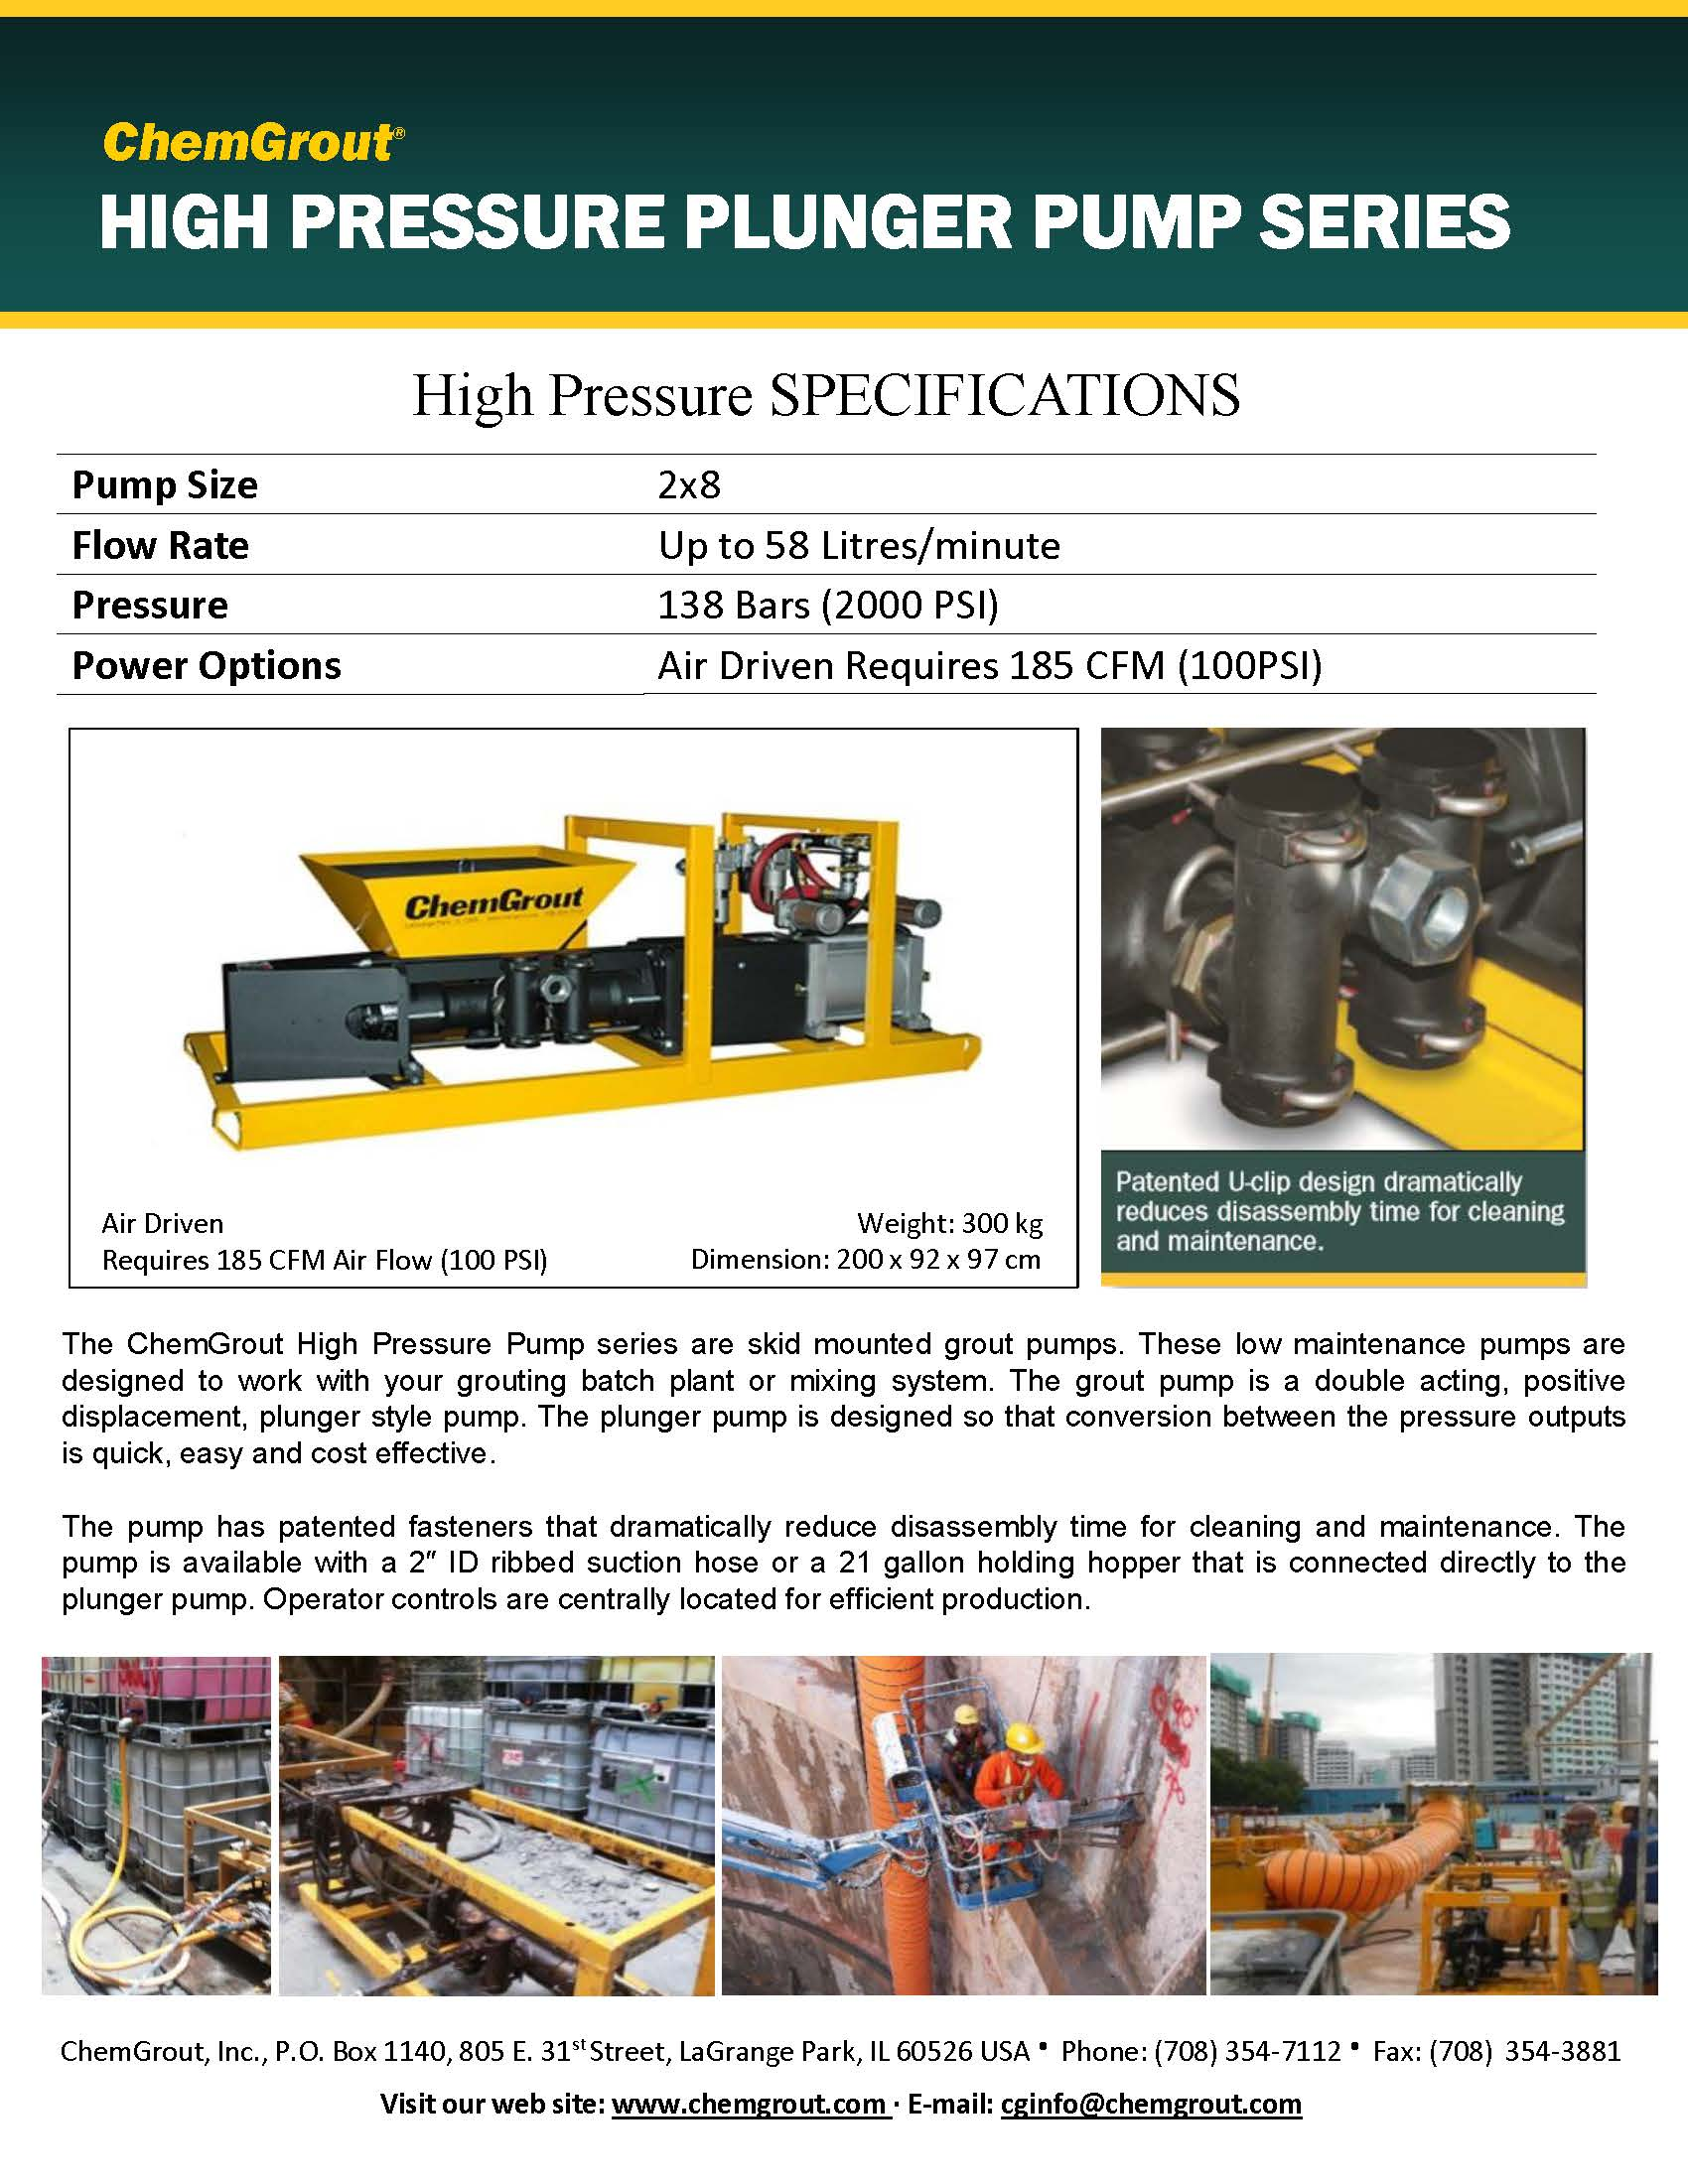 ChemGrout 2x8 Plunger Pump Brochure